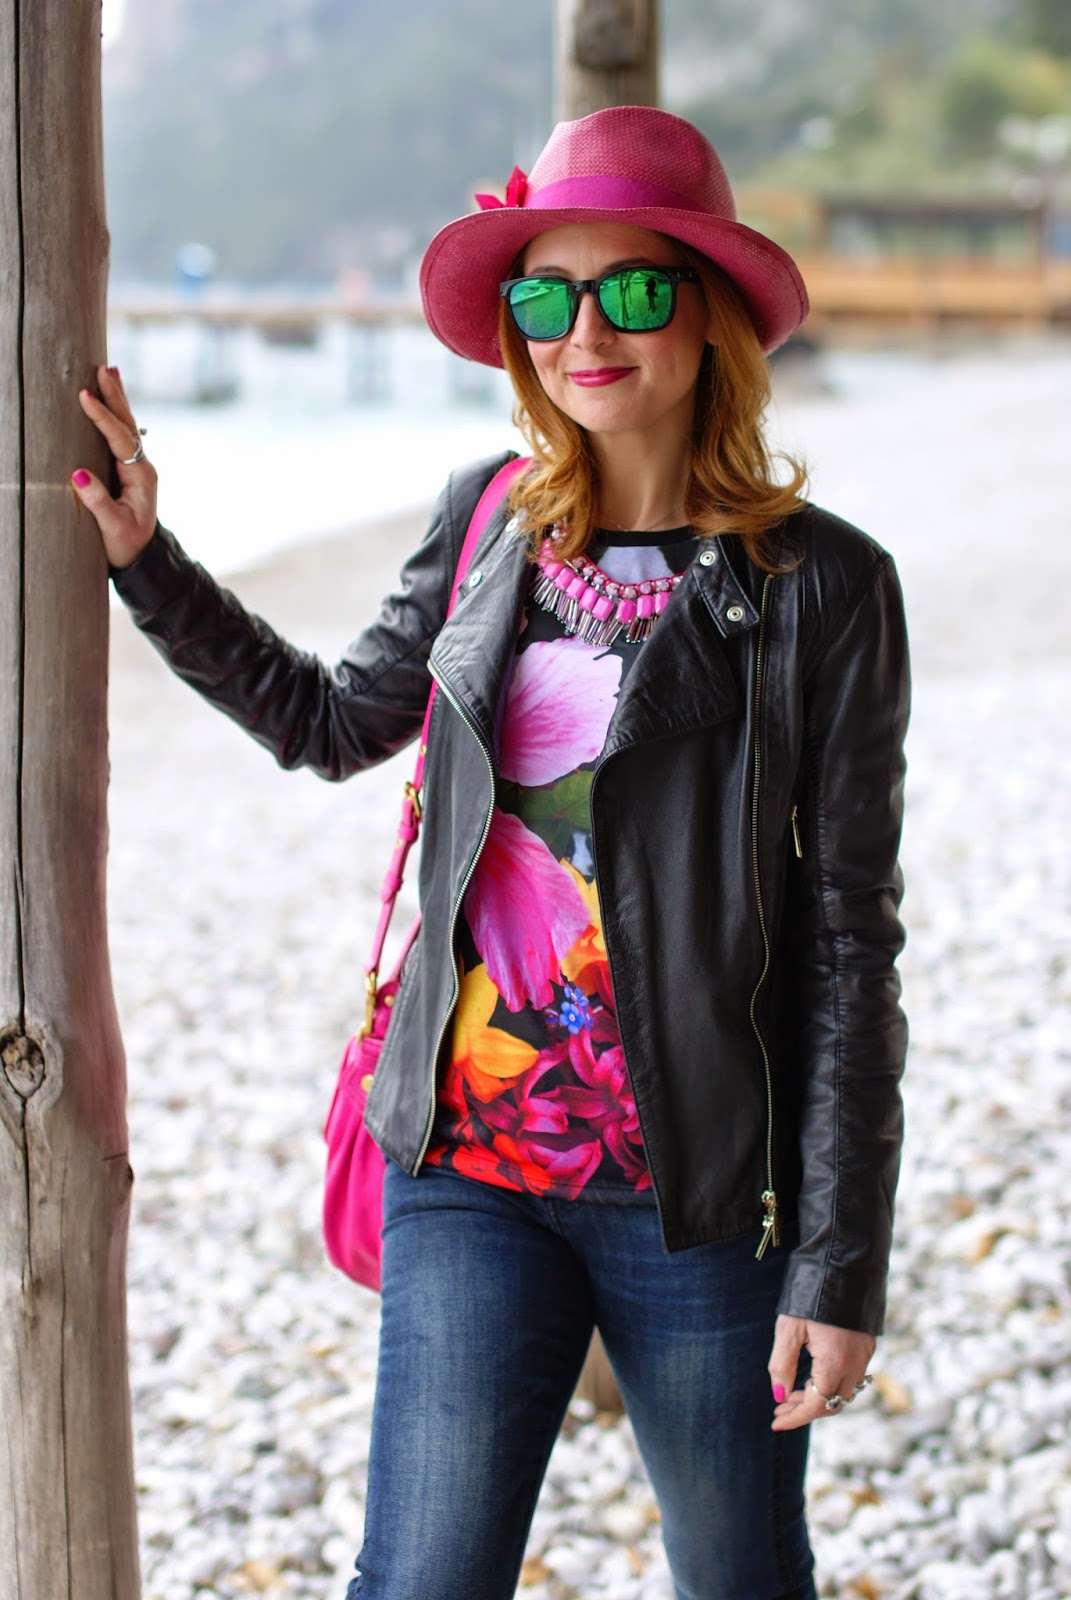 Rosé a pois hat, Sodini necklace, Shopart t-shirt, Fashion and Cookies, fashion blogger